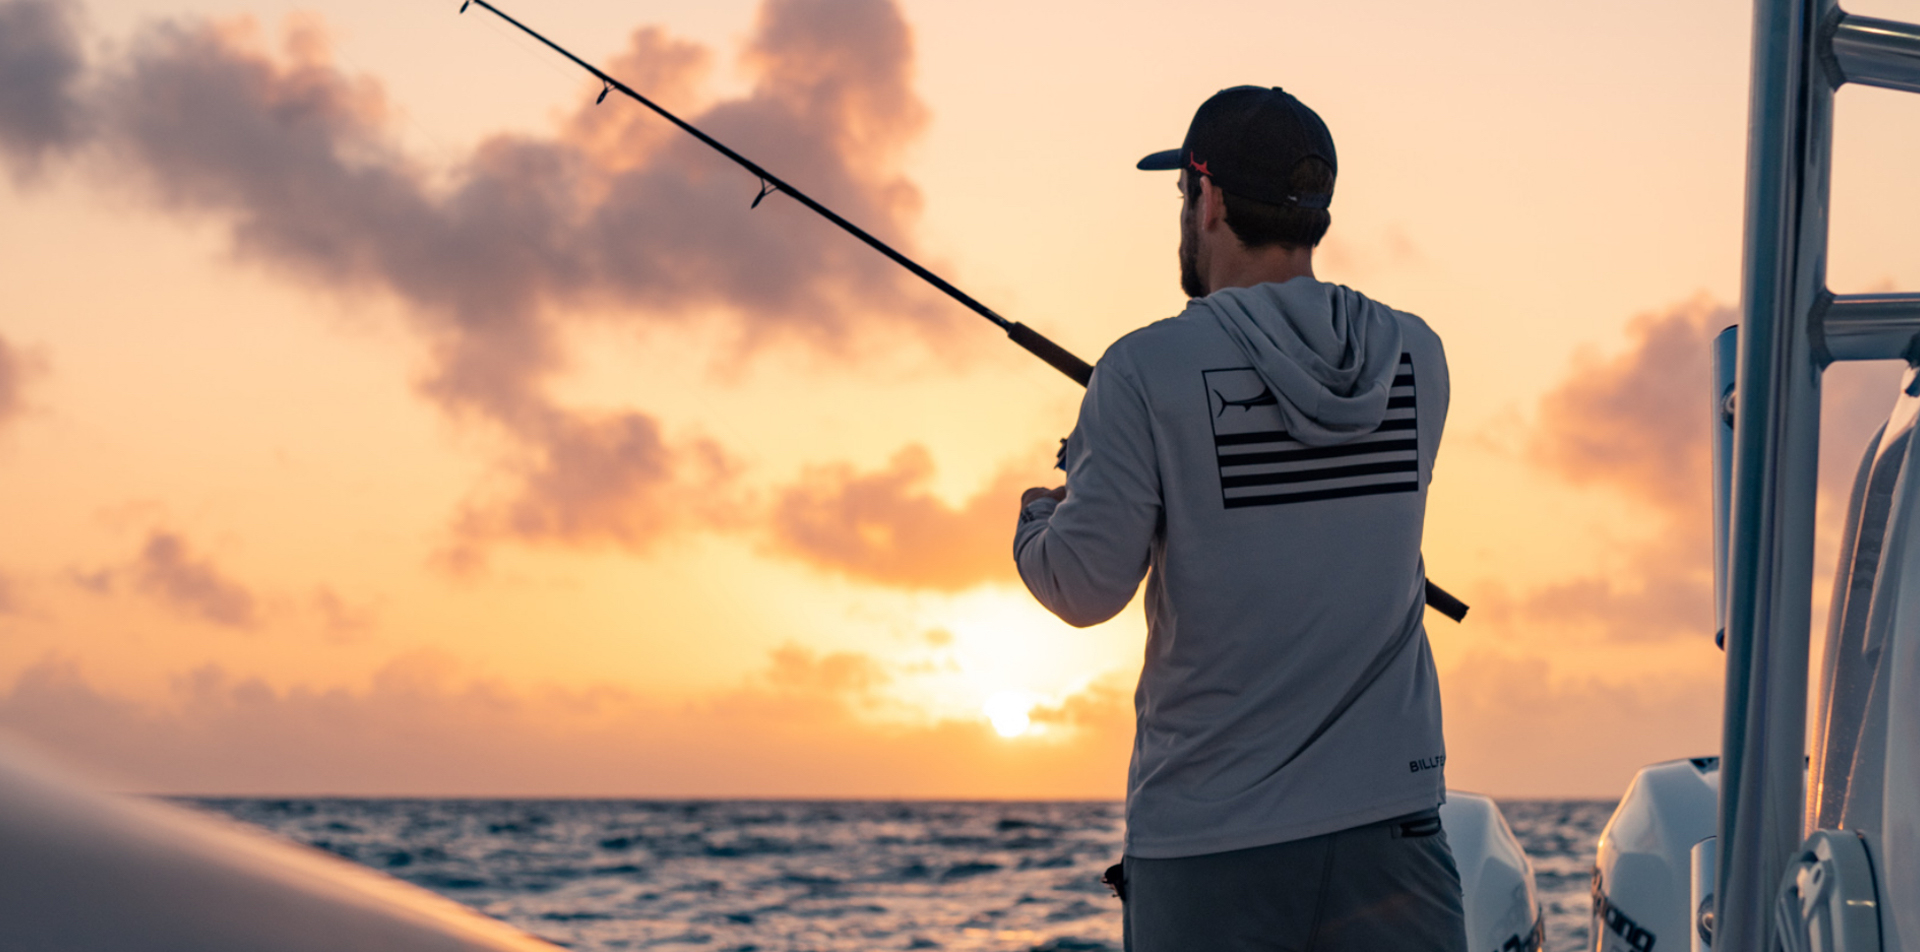 Man fishing on the premier Invincible center console.